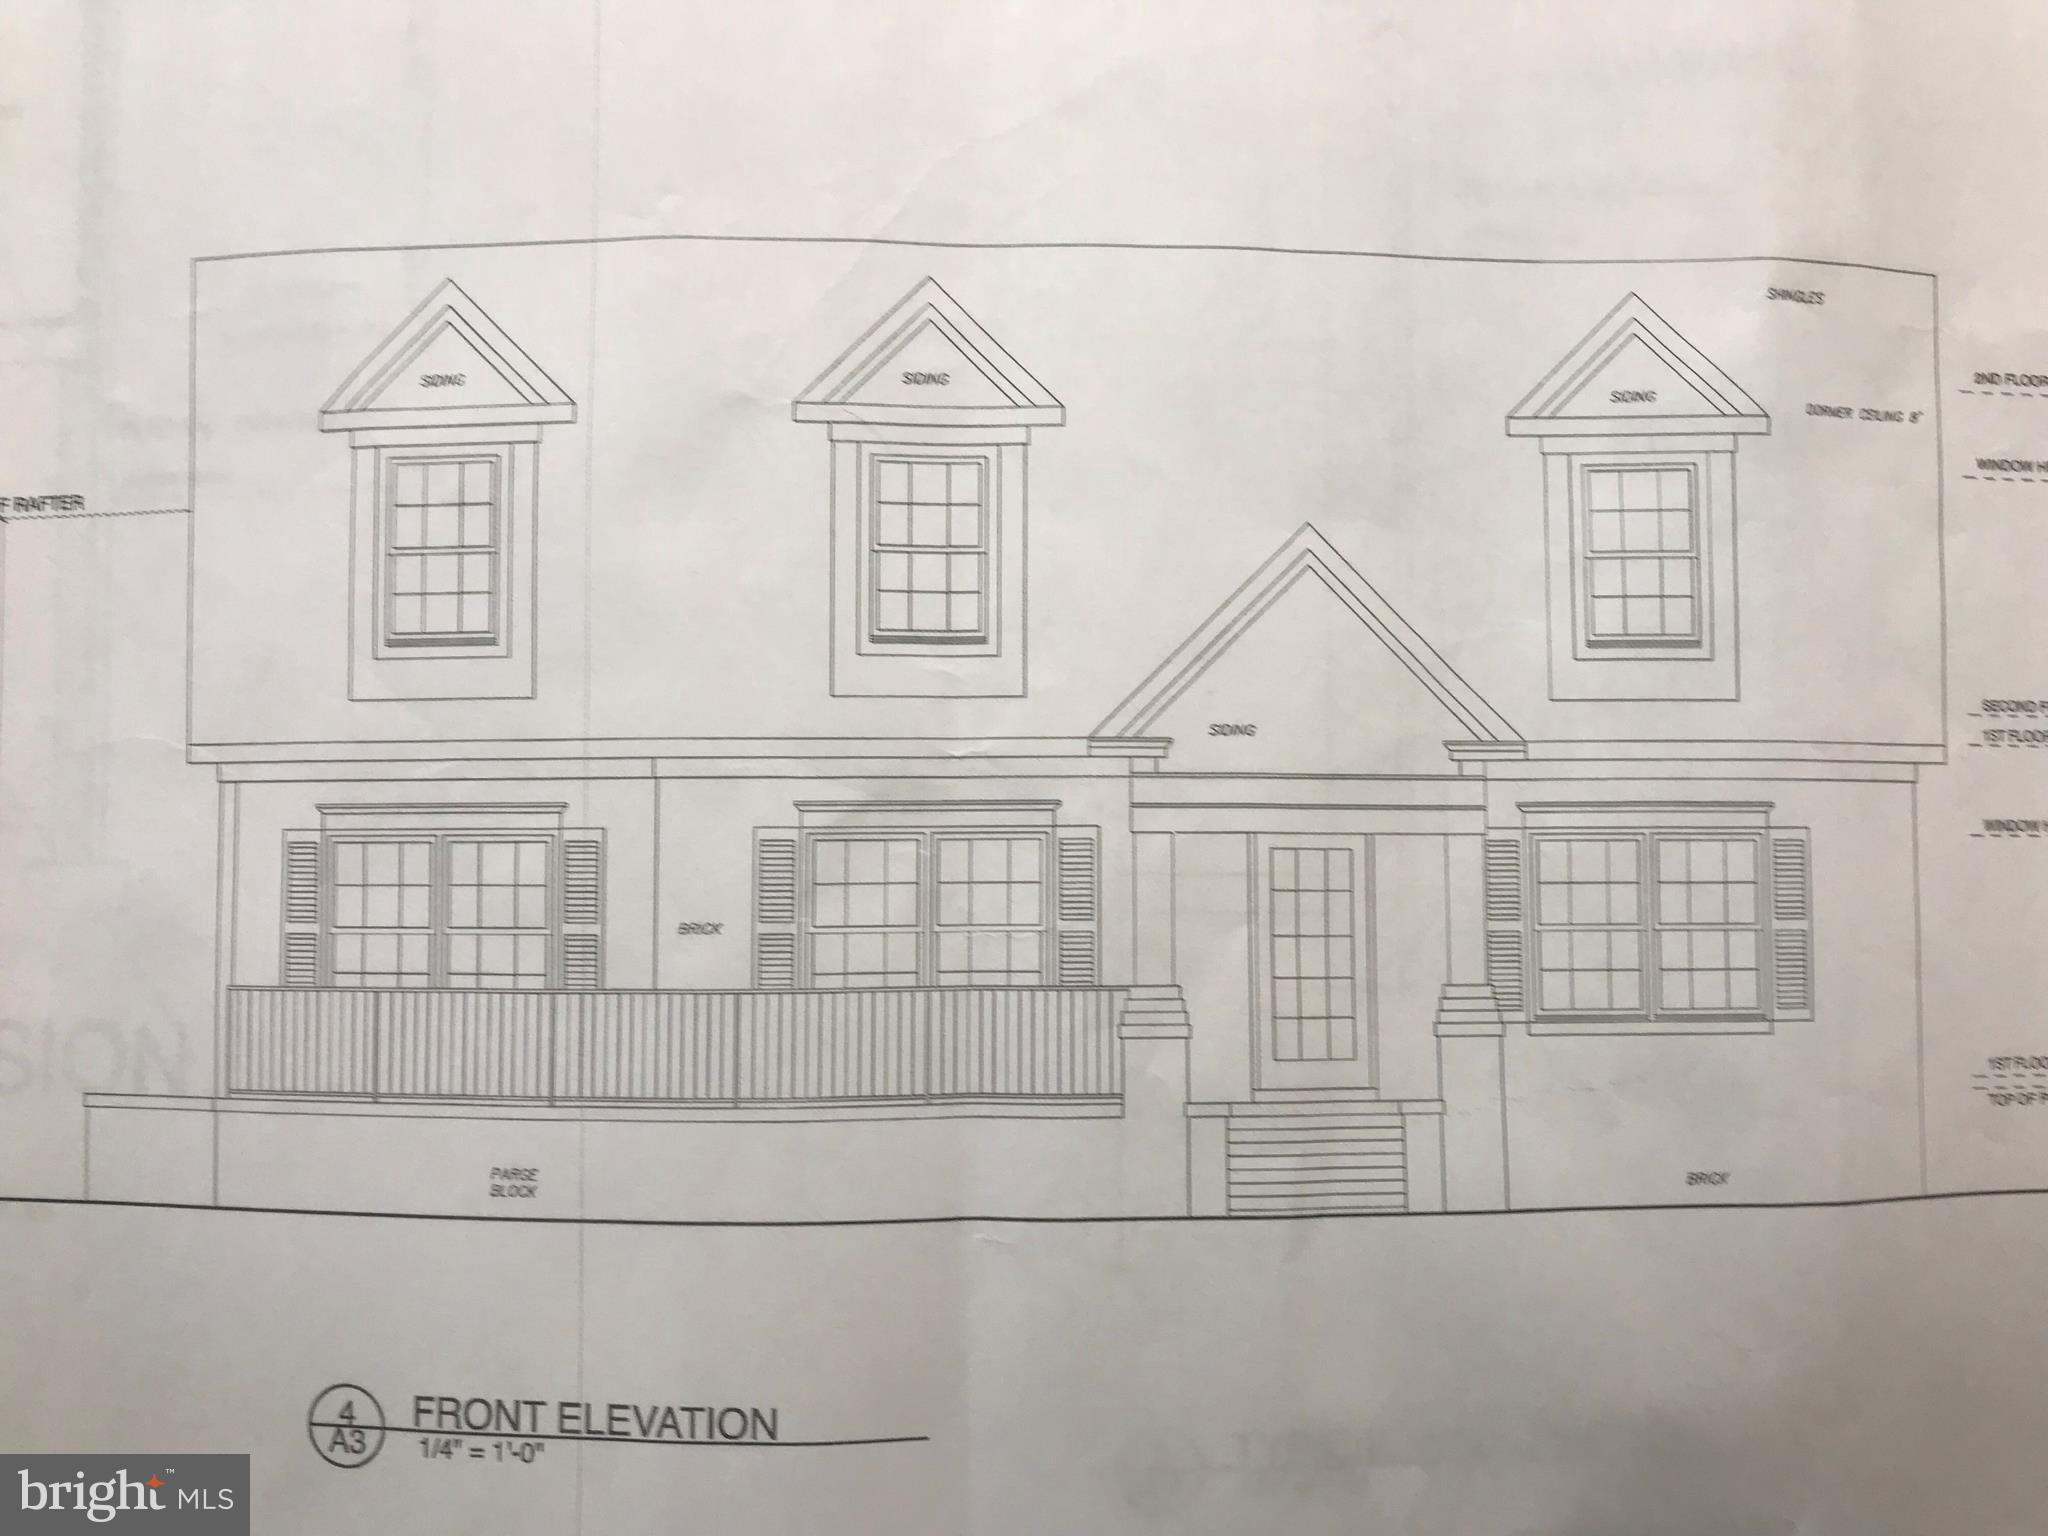 NEW CONSTRUCTION: A new single family home Craftsman masterpiece in sought after Del Ray/Potomac Yards. Many options available. Act fast and get a chance to customize it with all your favorite amenities. Make this your forever home!